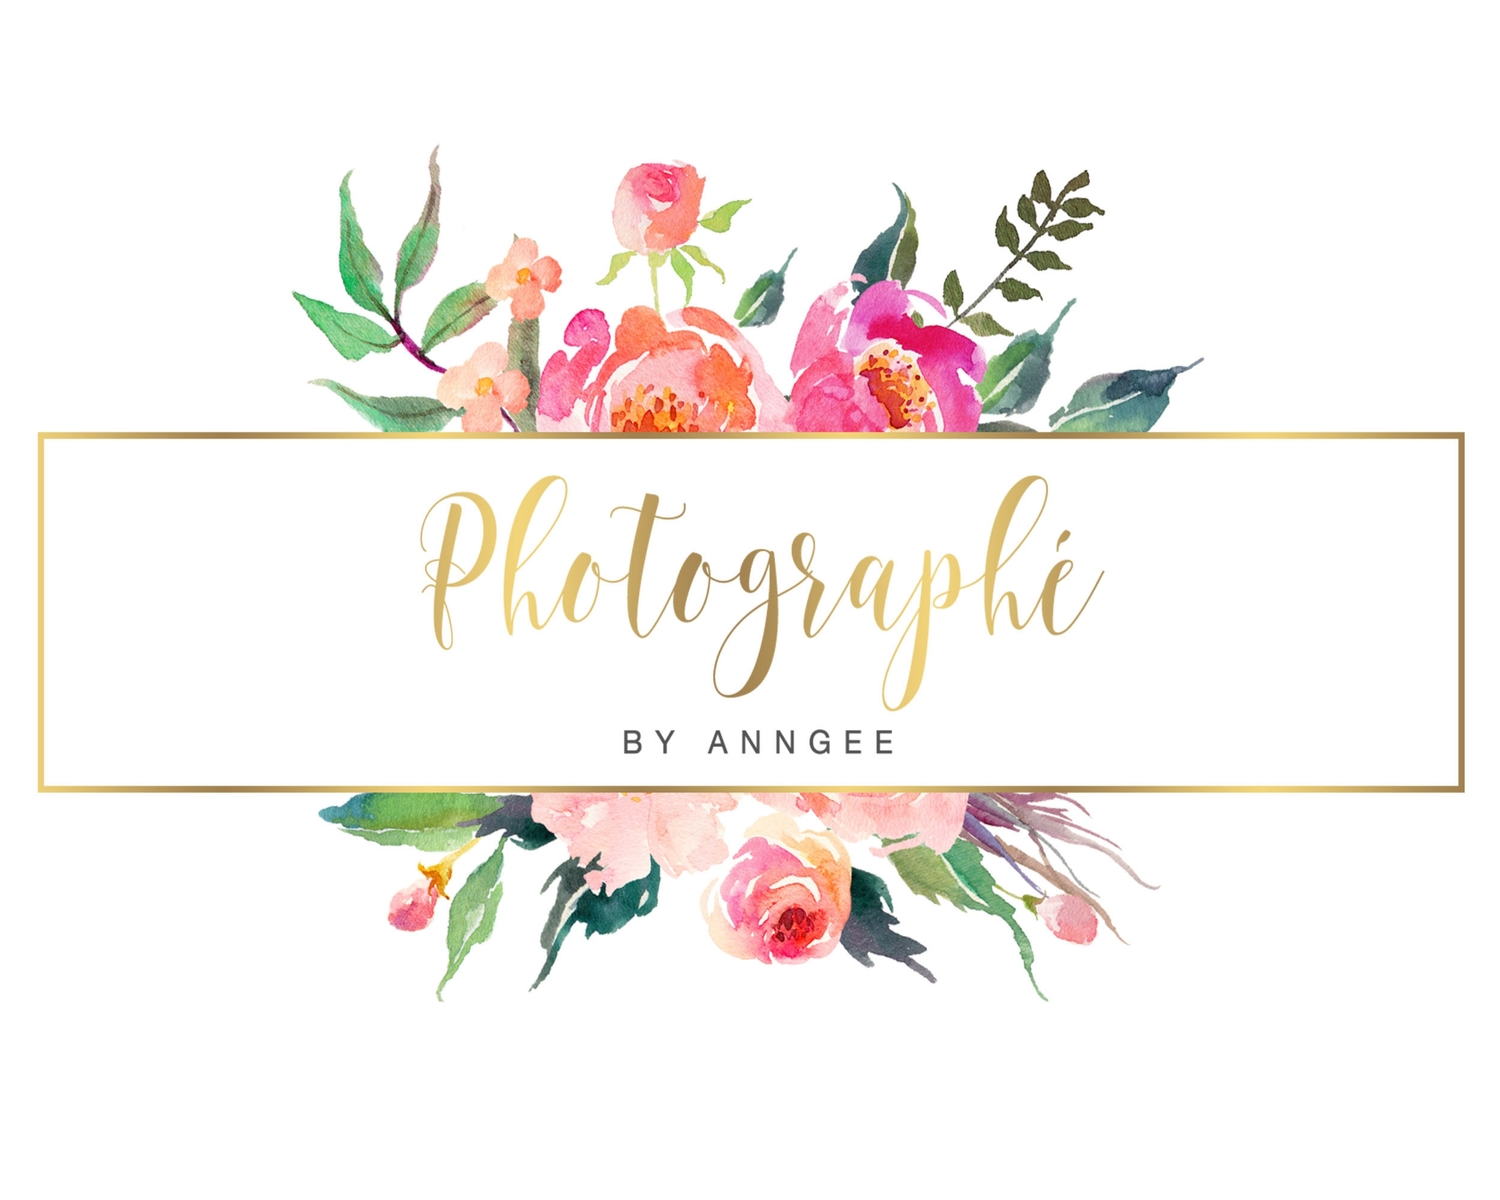 Photographé by Anngee